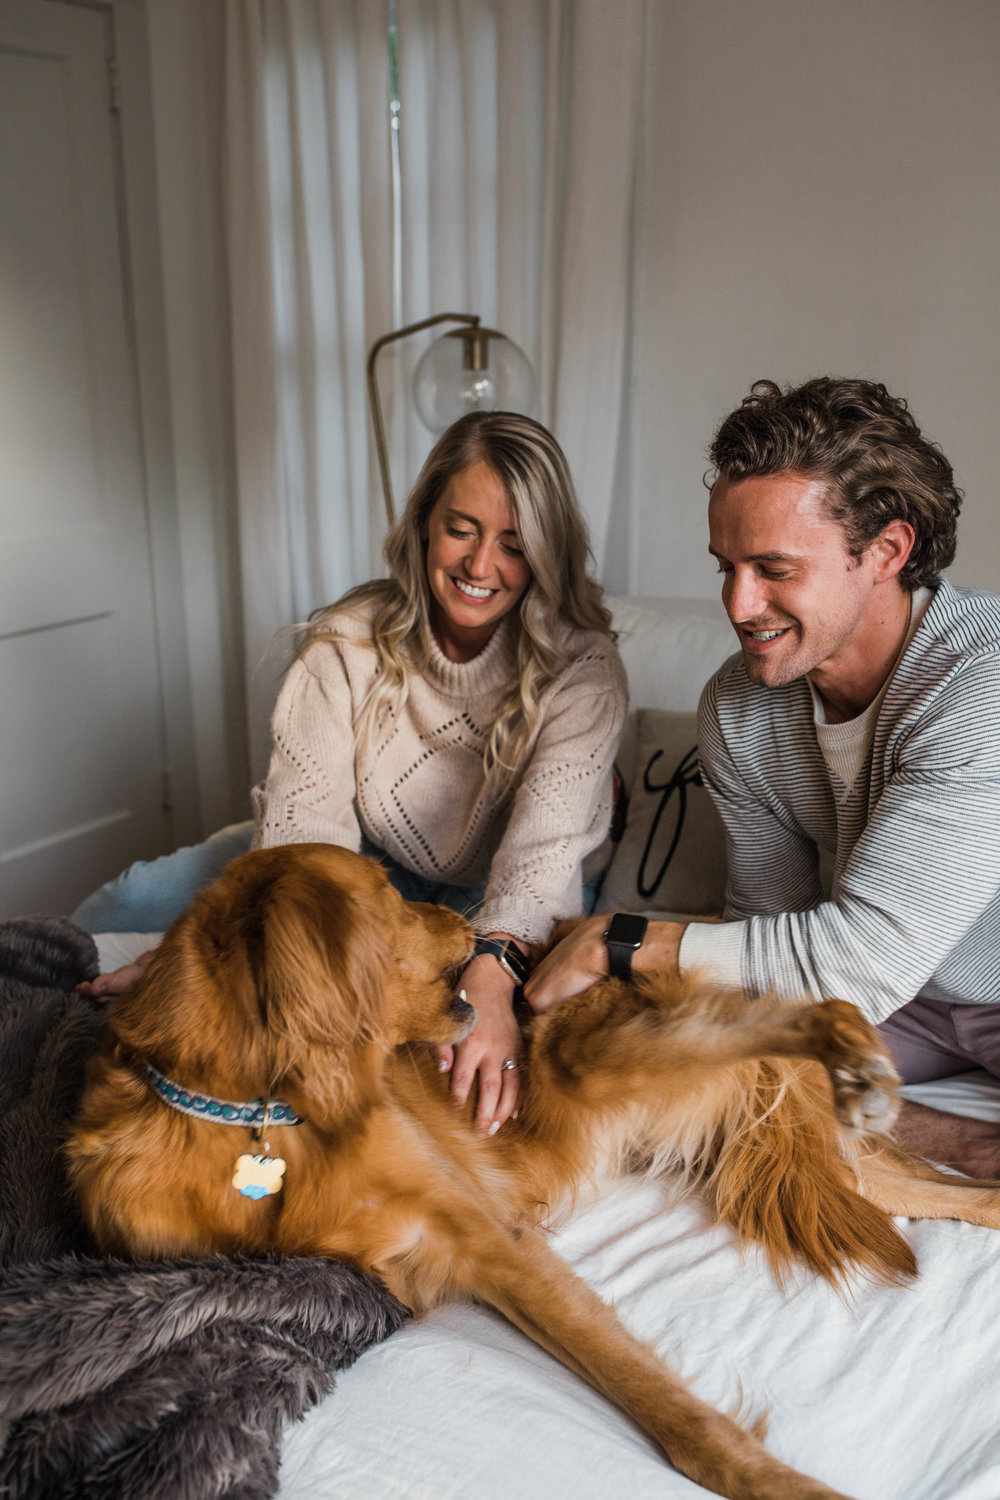 Cutest in home session with a mid century modern design and Golden Retriever!